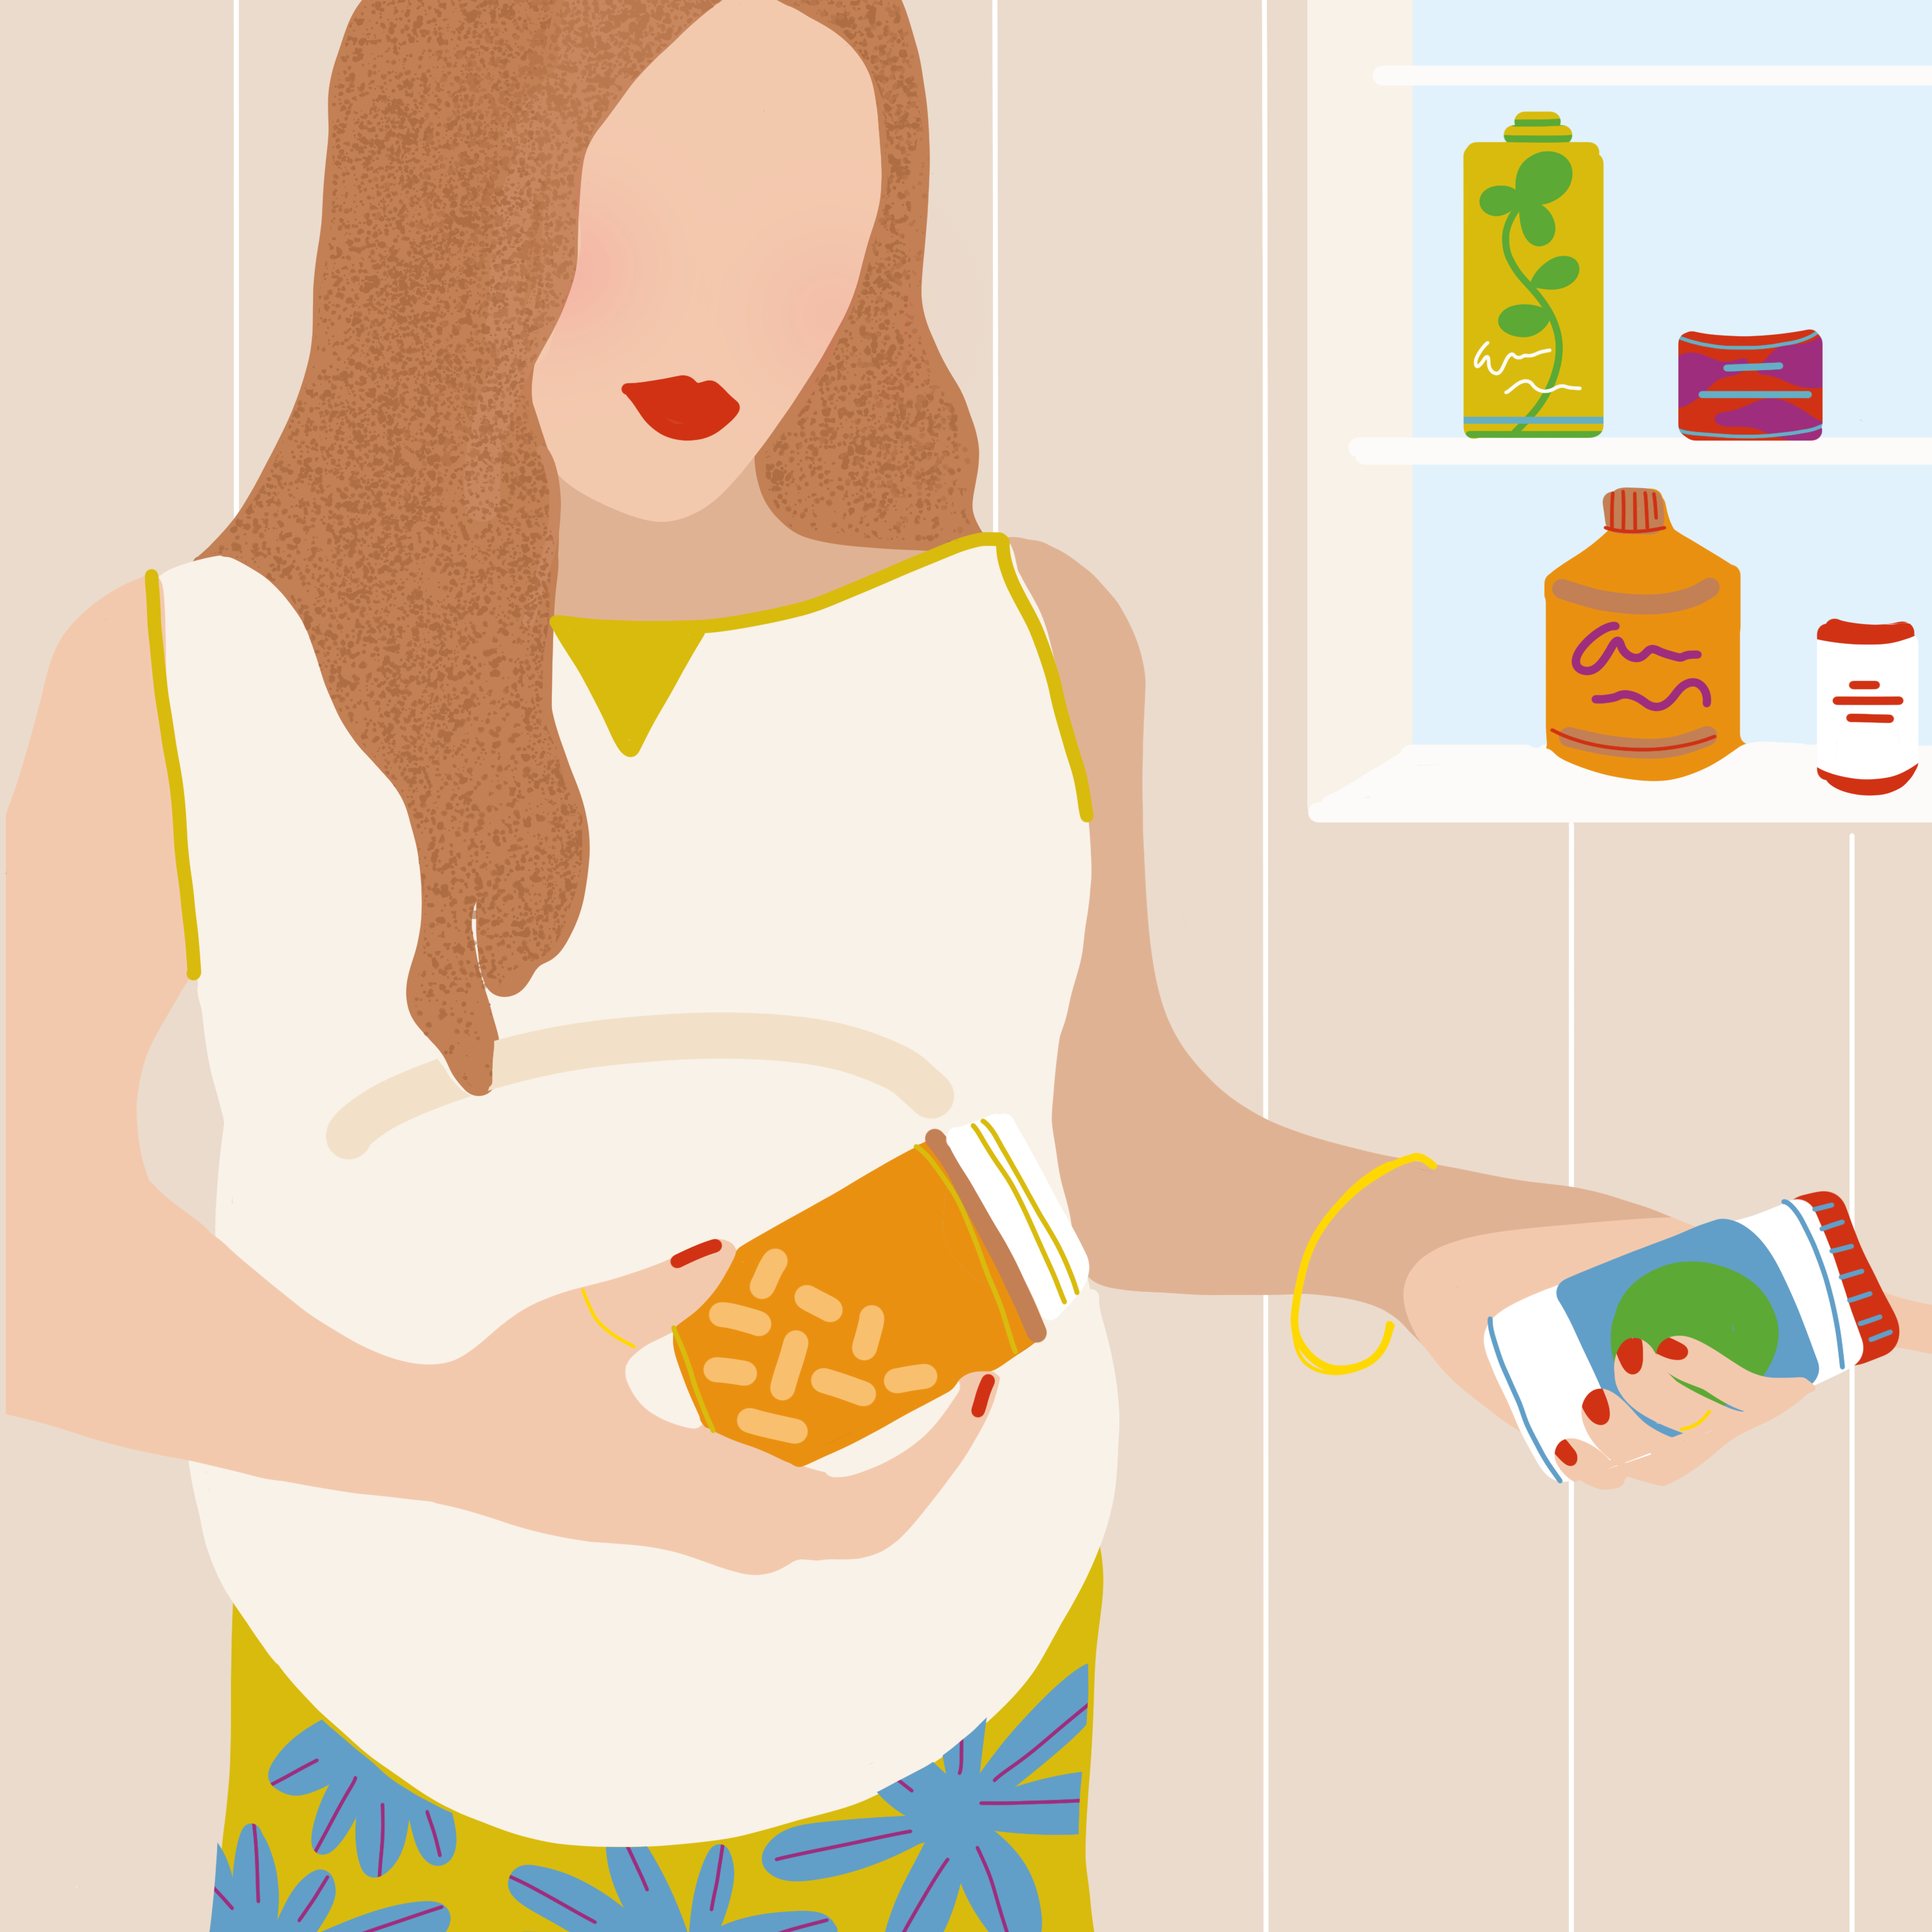 Woman considering psych medications during pregnancy illustration